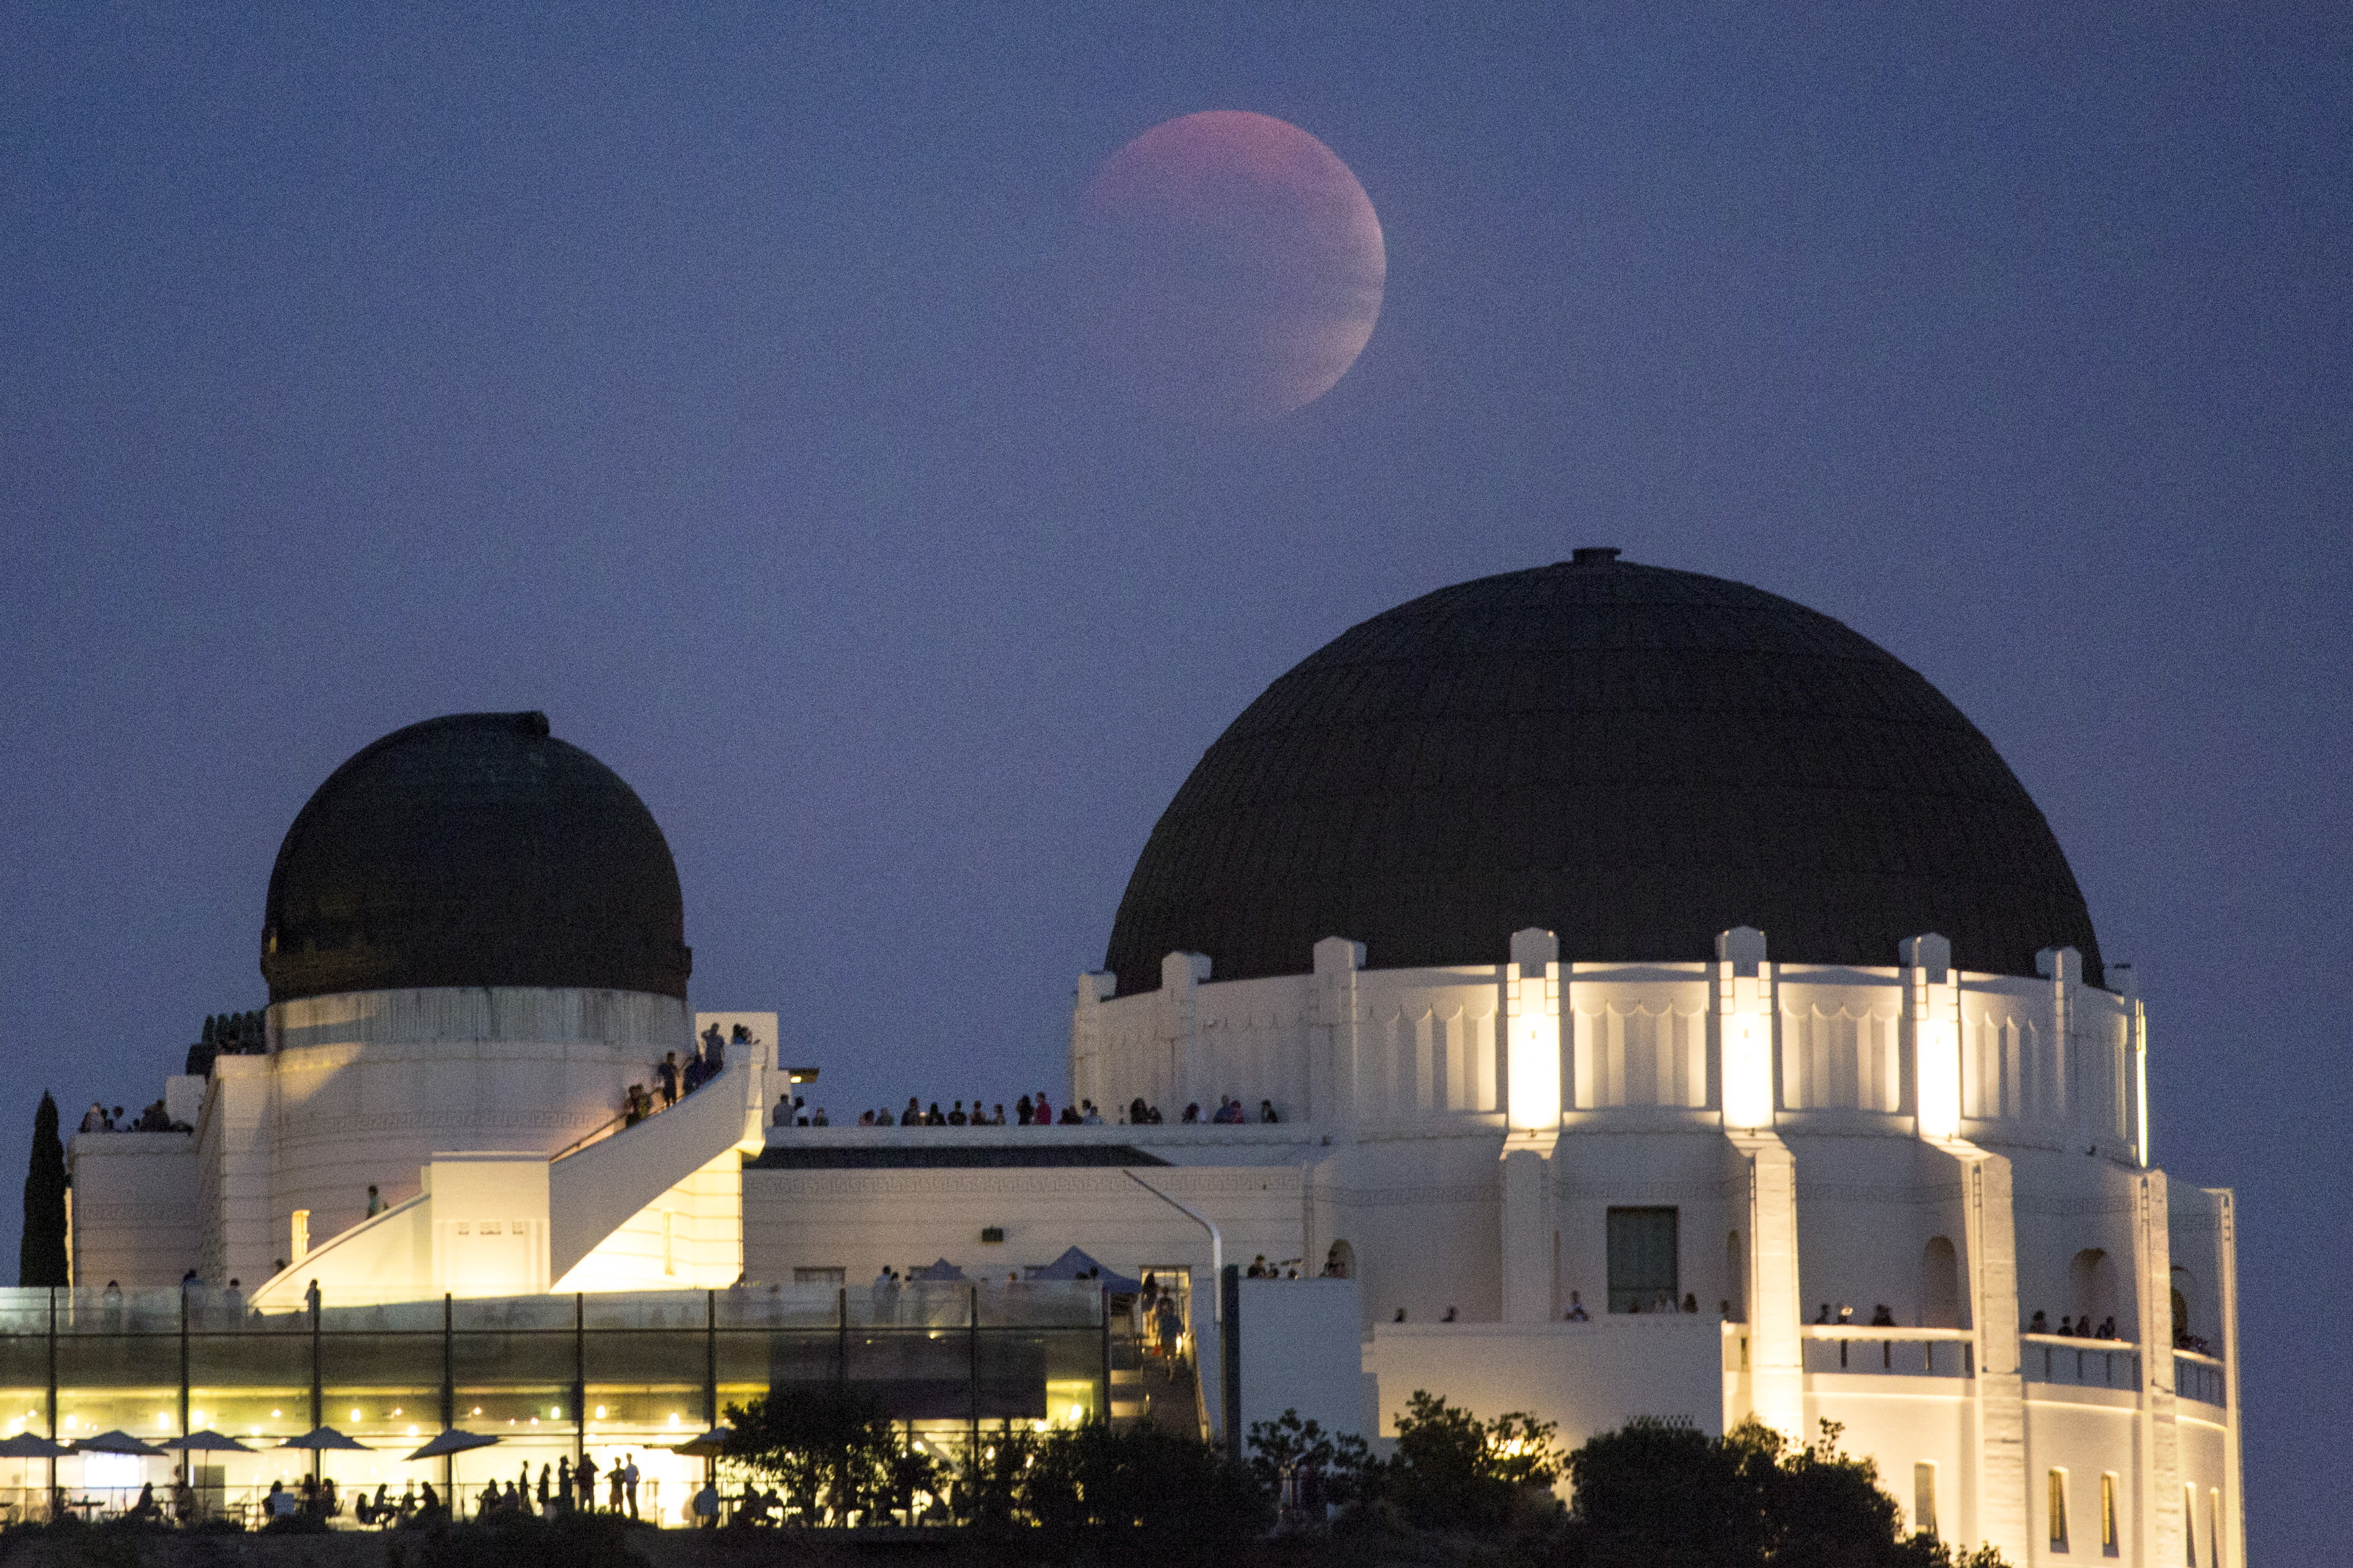 A supermoon is seen in the sky above Griffith Park Observatory in Los Angeles, California on Sept. 27. The next total lunar eclipse is January 2018. Photo by Jonathan Alcorn/Reuters